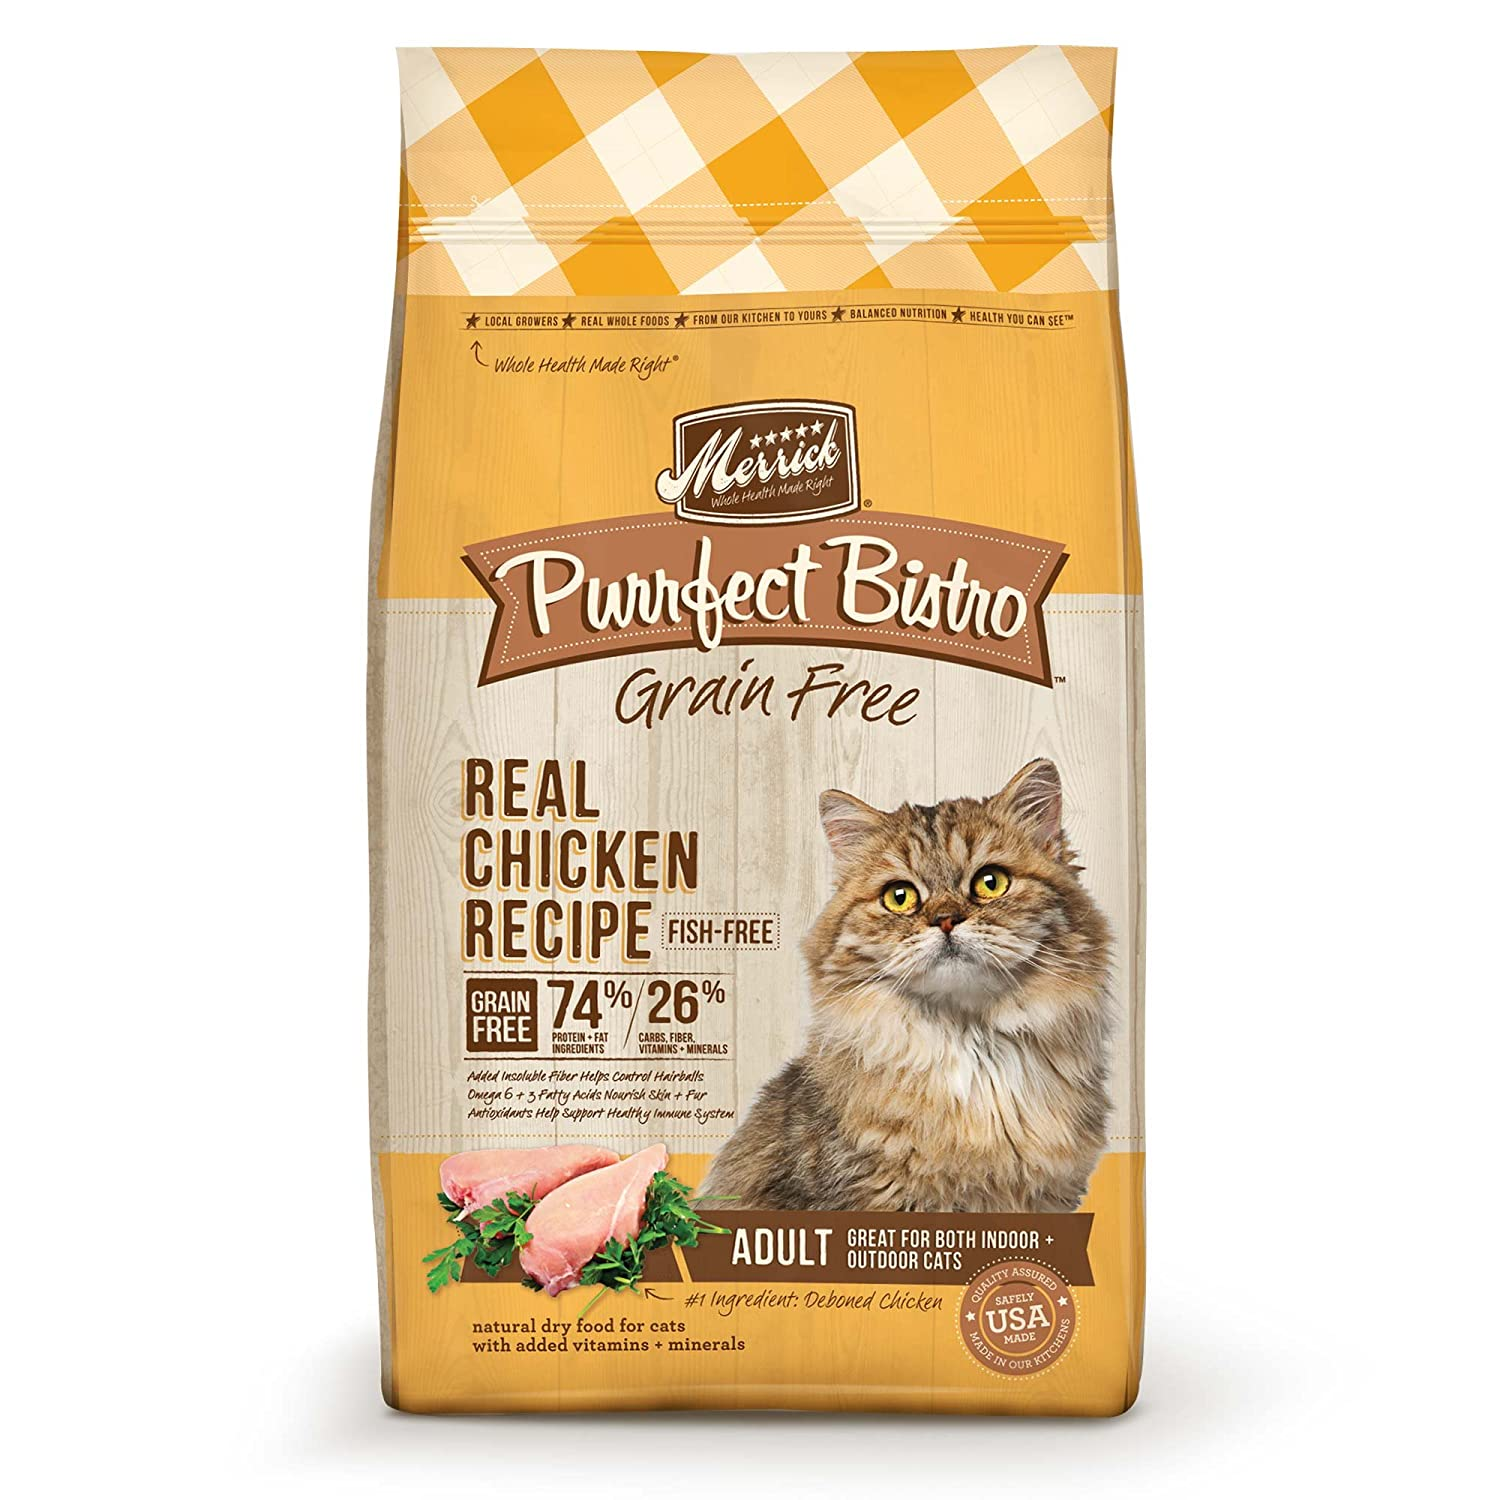 Amazon.com : Merrick Purrfect Bistro Grain Free Real Chicken Adult Dry Cat Food, 4 Lbs. : Dry Pet Food : Pet Supplies